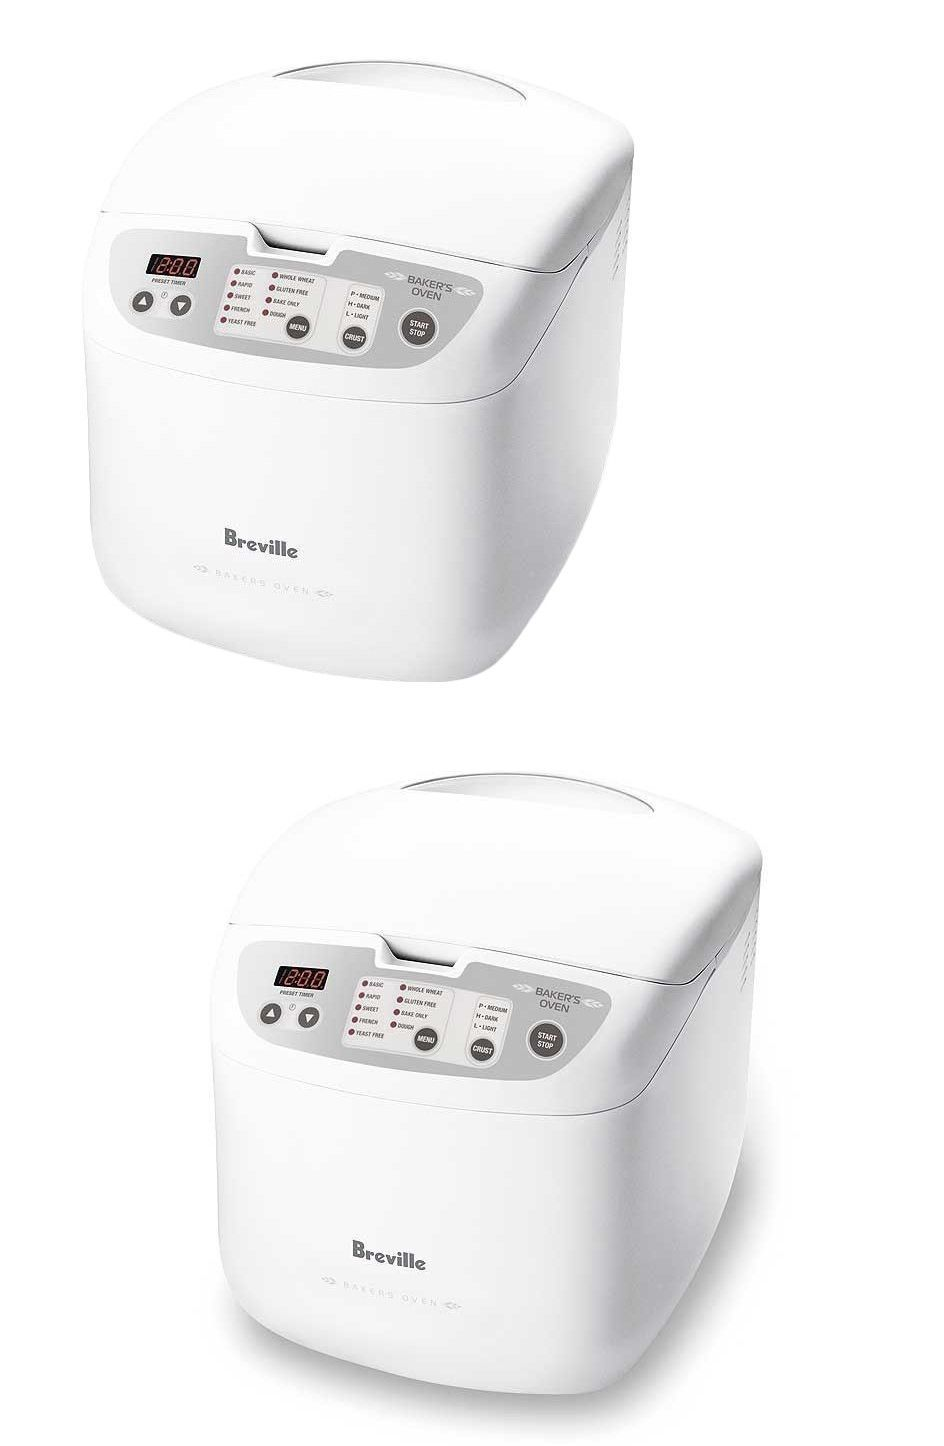 Bread Machines 20669 Breville Bbm100wht The Bakers Oven Bread Maker S Buy It Now Only 59 On Ebay Bread Machines Bakers Oven Bread Maker Bread Machine